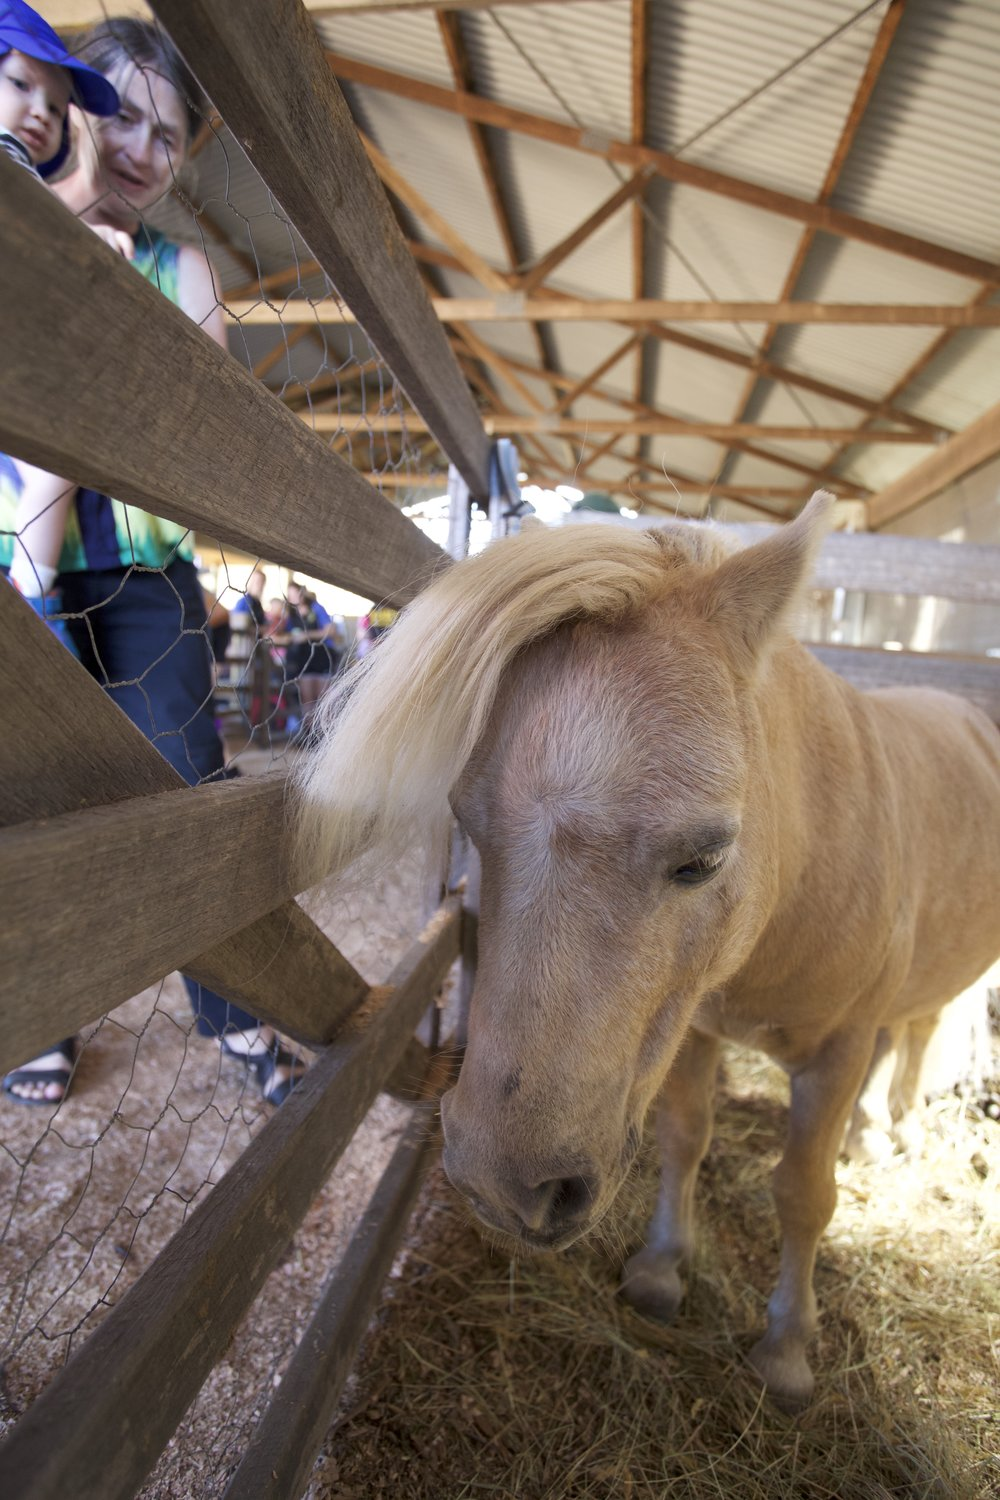 With a fringe like this, this pony could have entered the show boy!